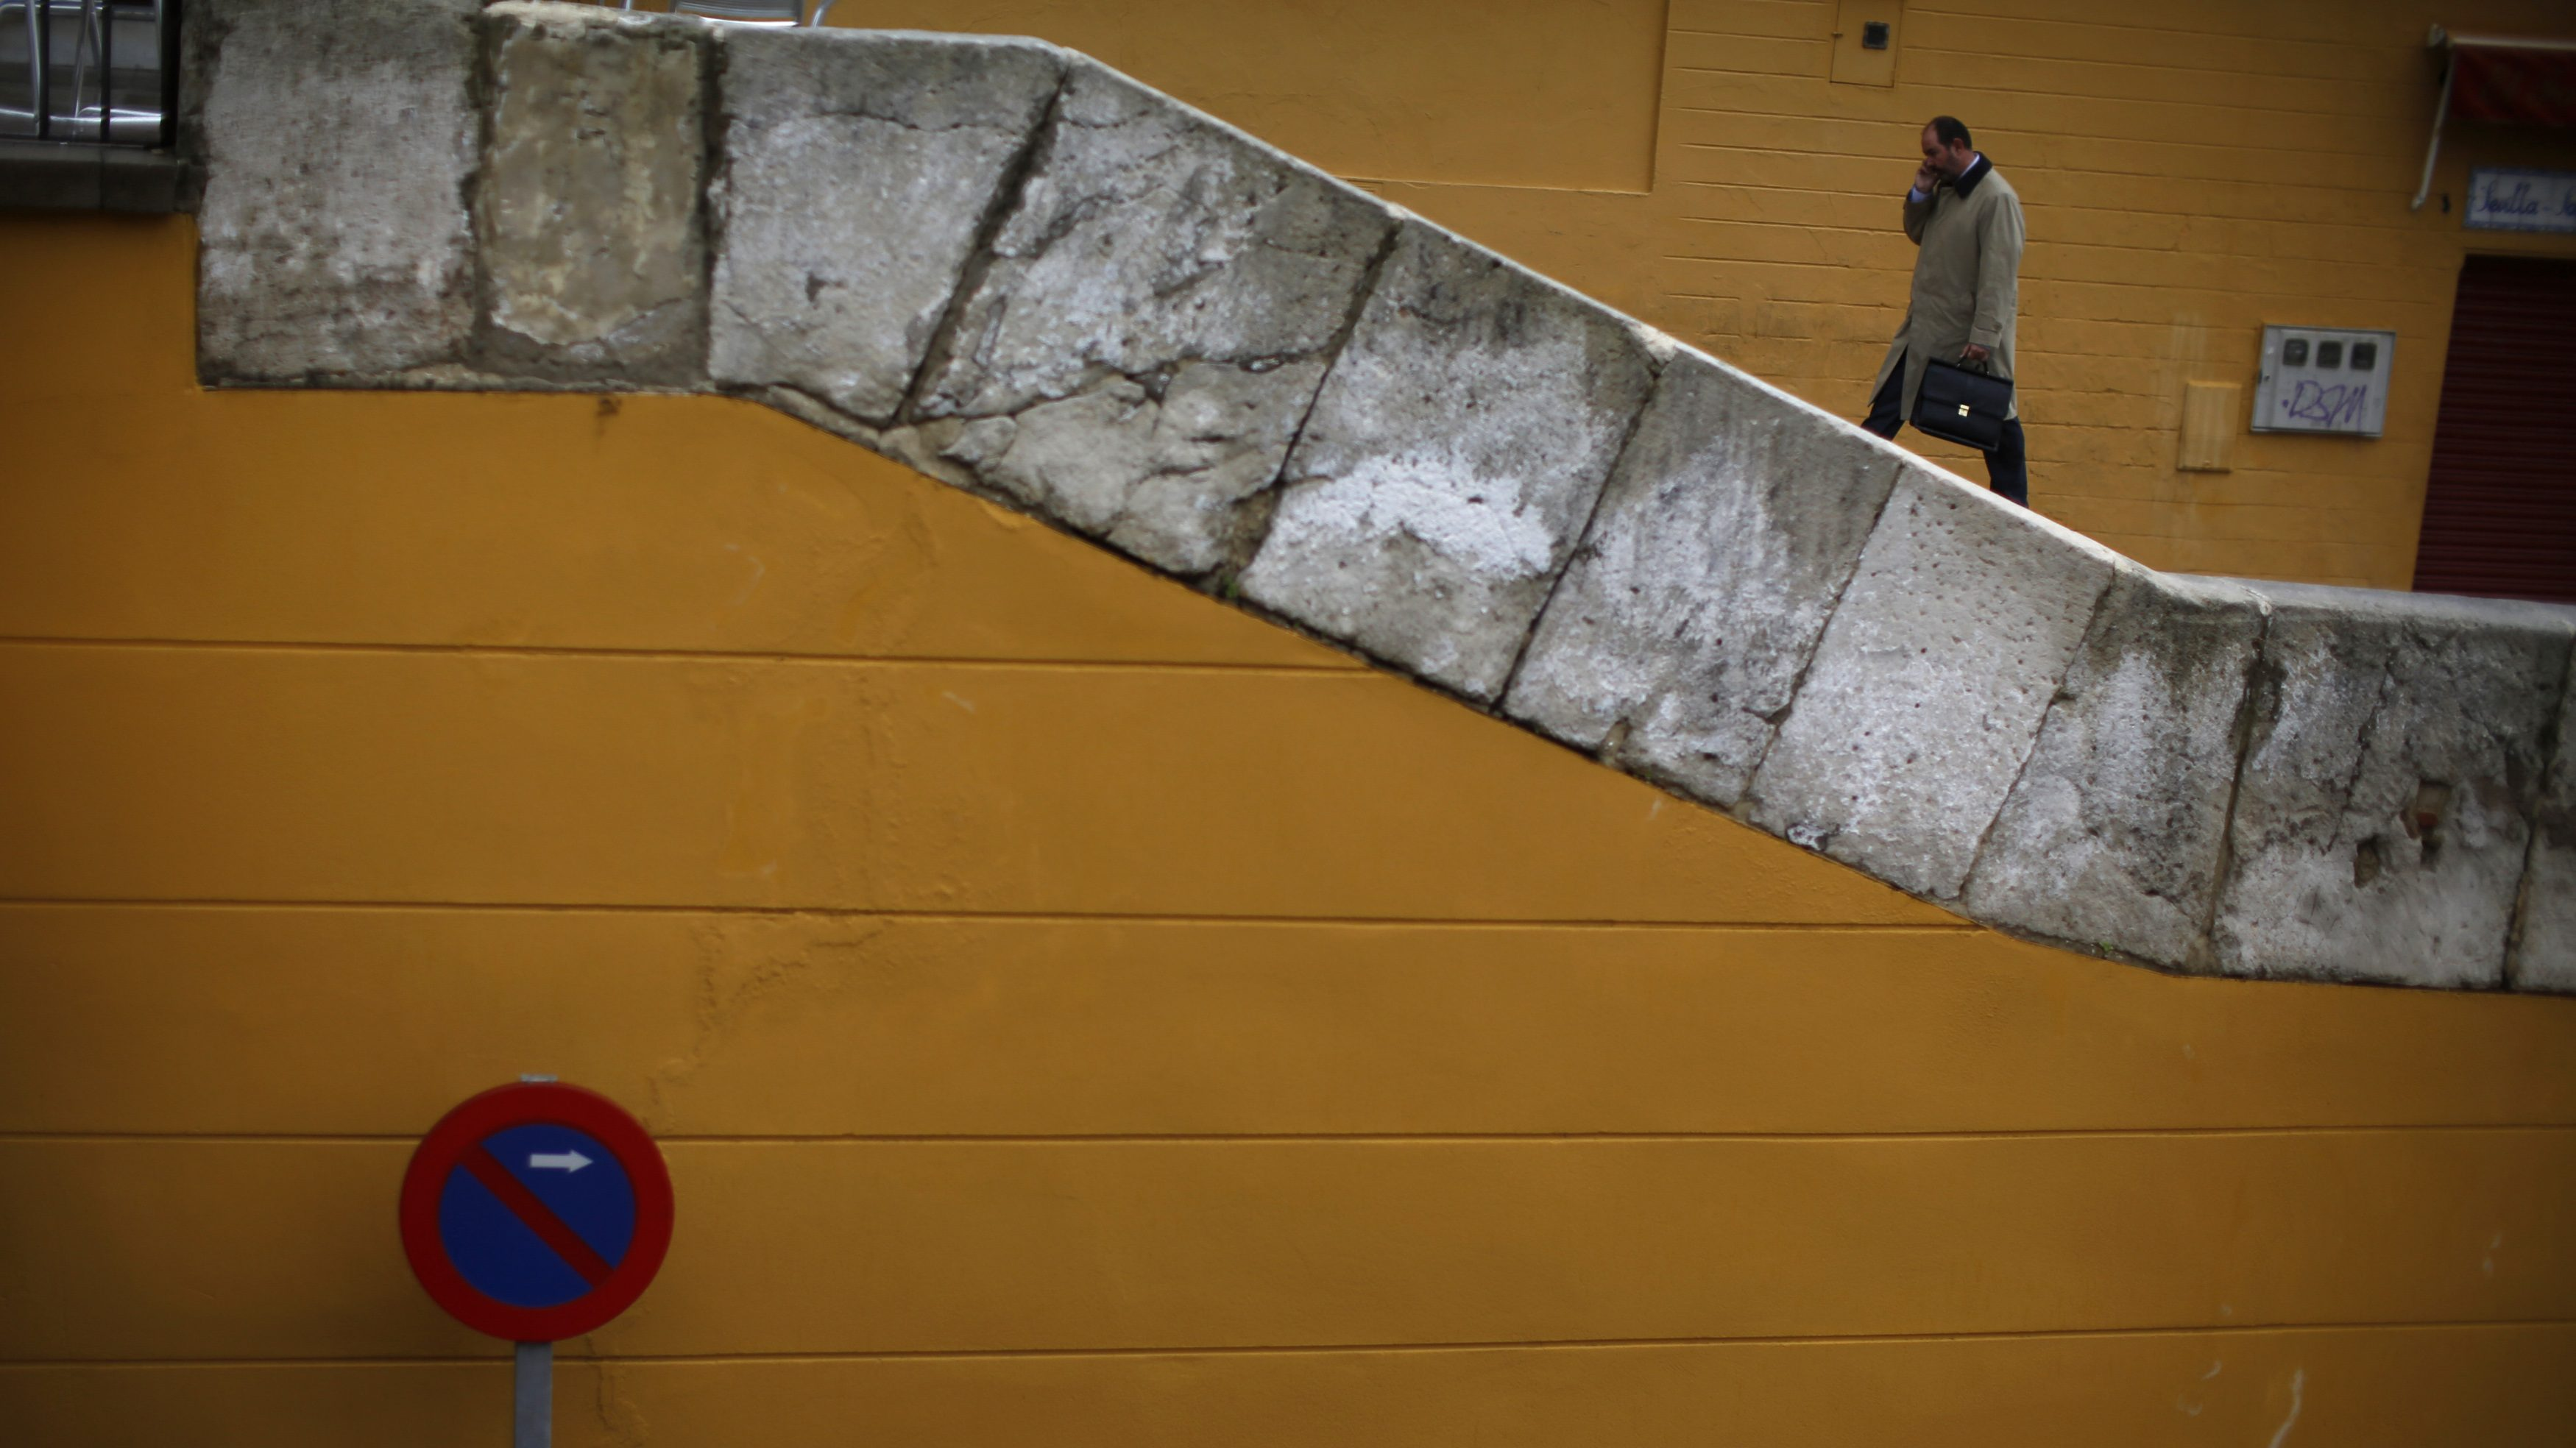 A man climbs up stairs in the Triana city quarter of the Andalusian capital of Seville